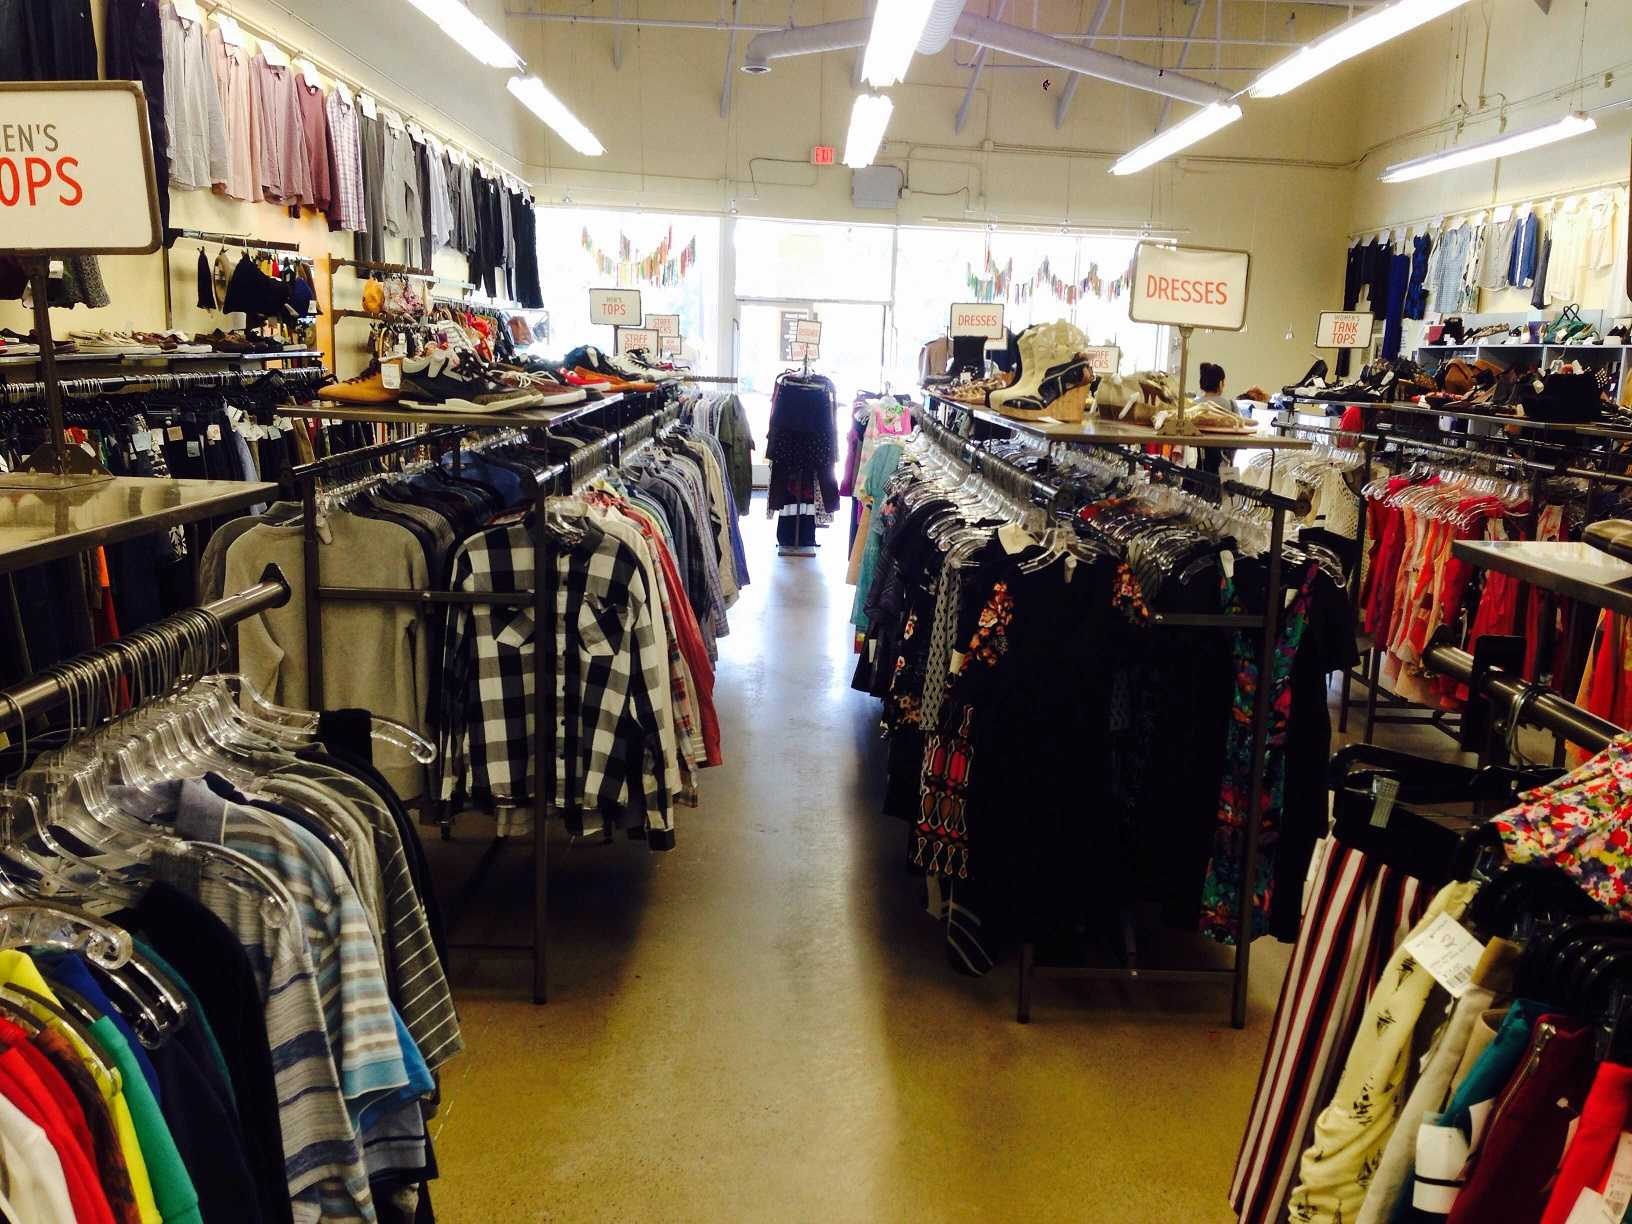 Crossroads Trading Company, located at the Crossroads Plaza is a popular spot for students to buy secondhand clothing.